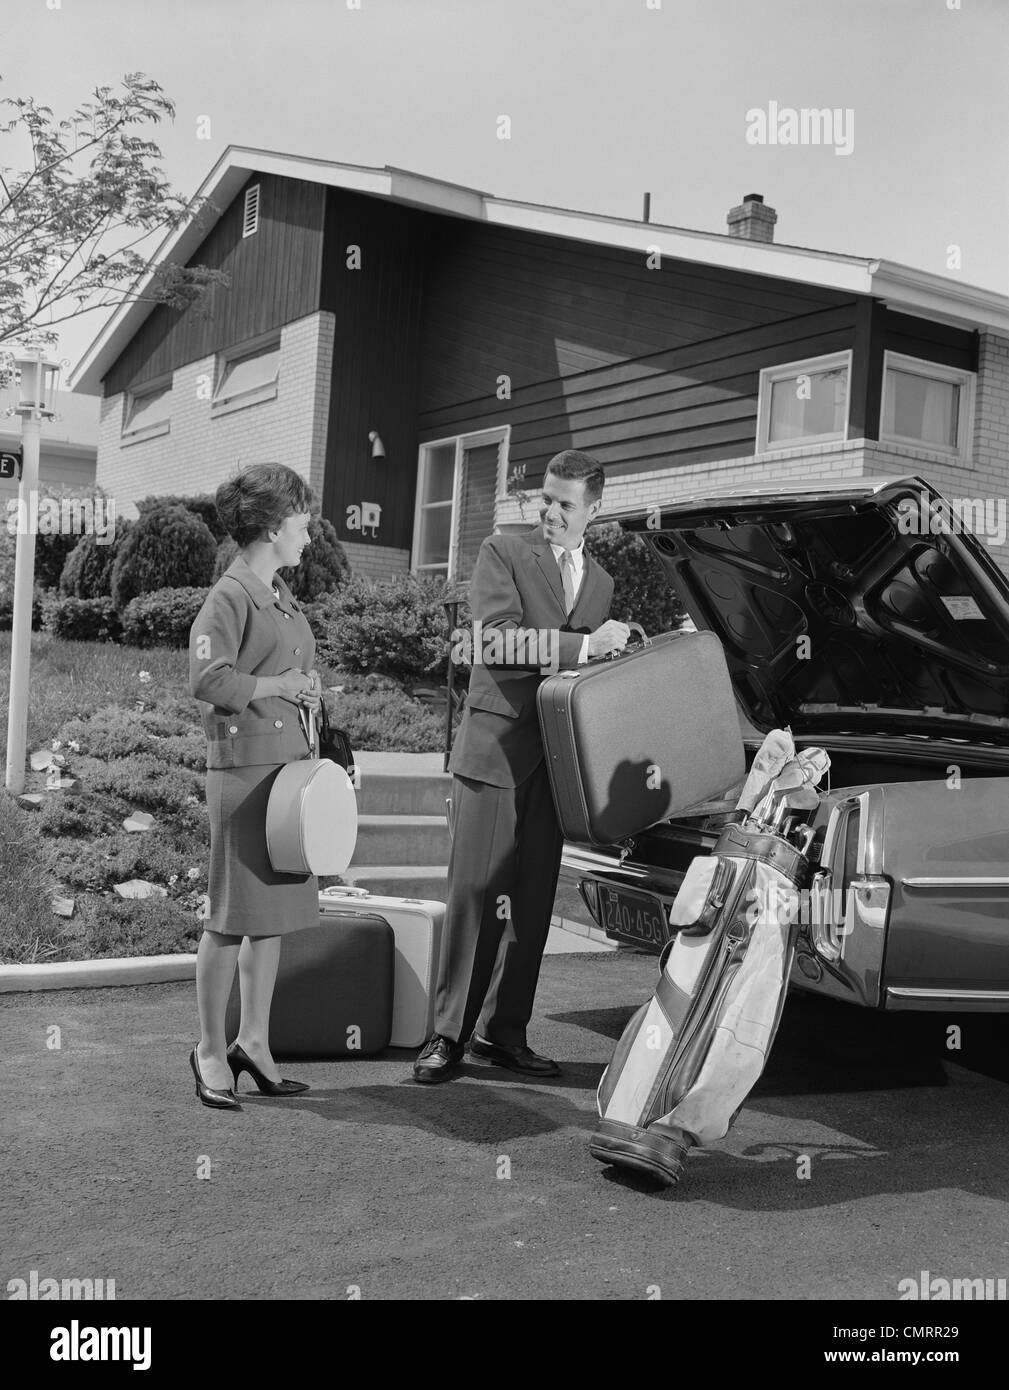 1960s COUPLE MAN WOMAN PACKING LUGGAGE INTO CAR TRUNK BY SUBURBAN HOUSE - Stock Image